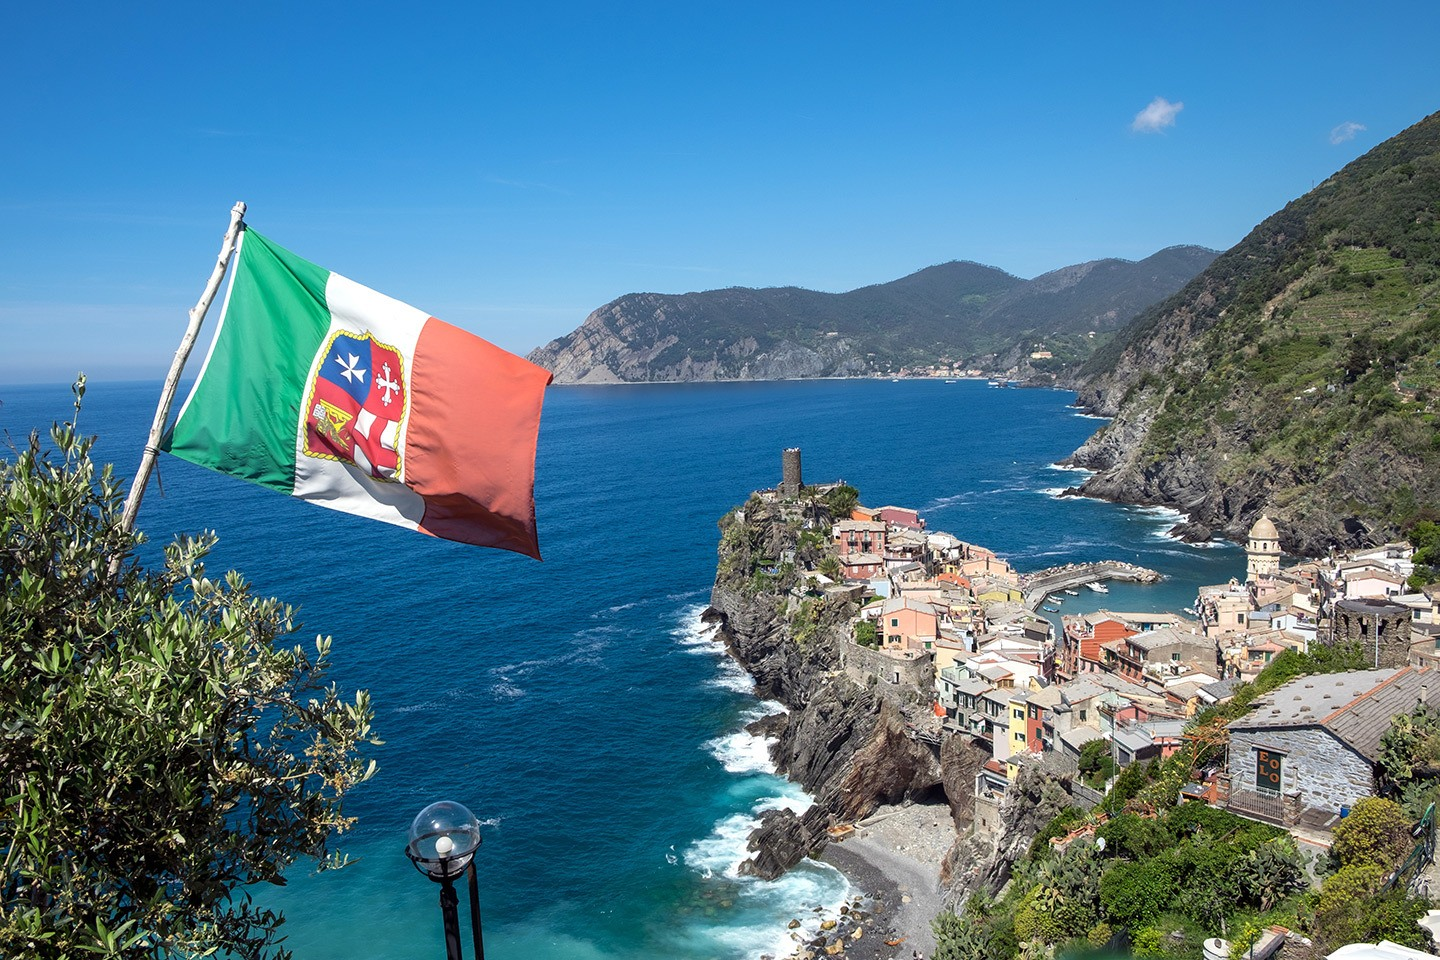 The first-timers guide to visiting the Cinque Terre – Vernazza